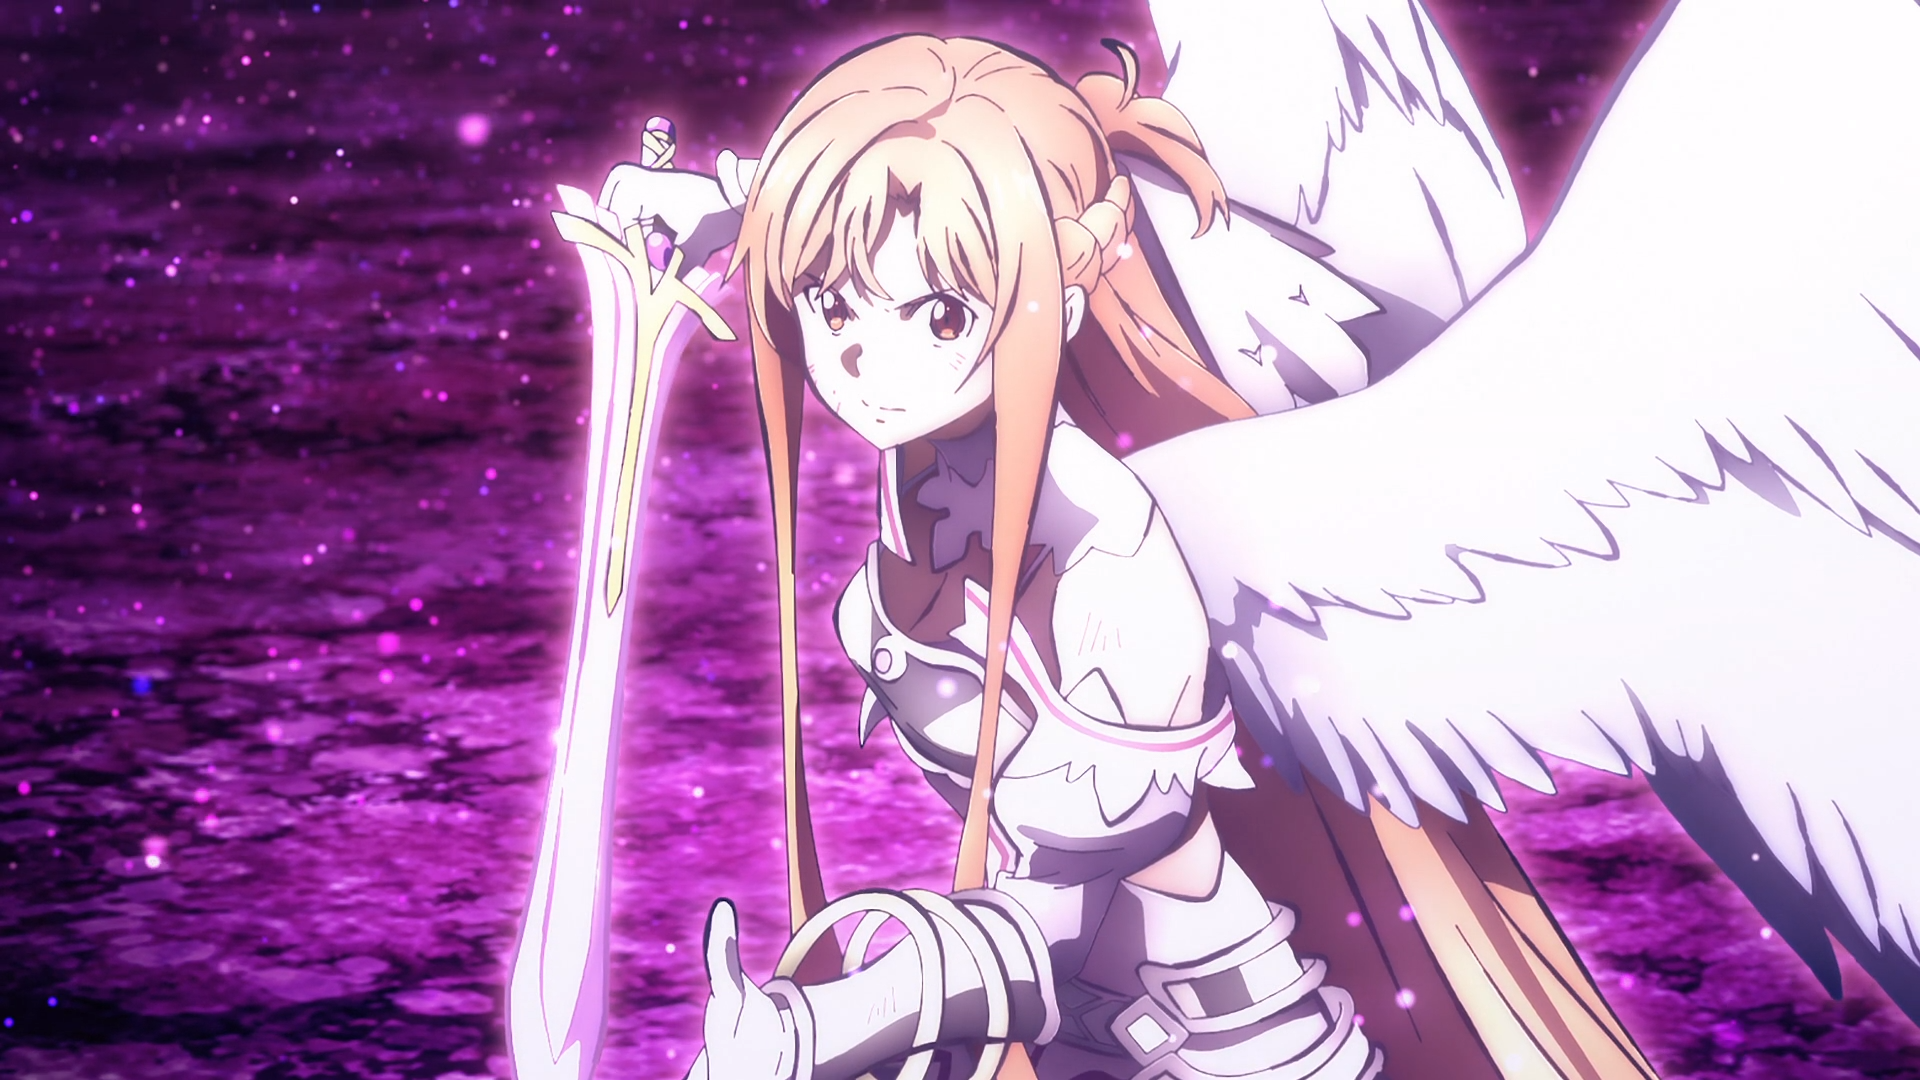 Sword Art Alicization - Asuna Angelic Goddess